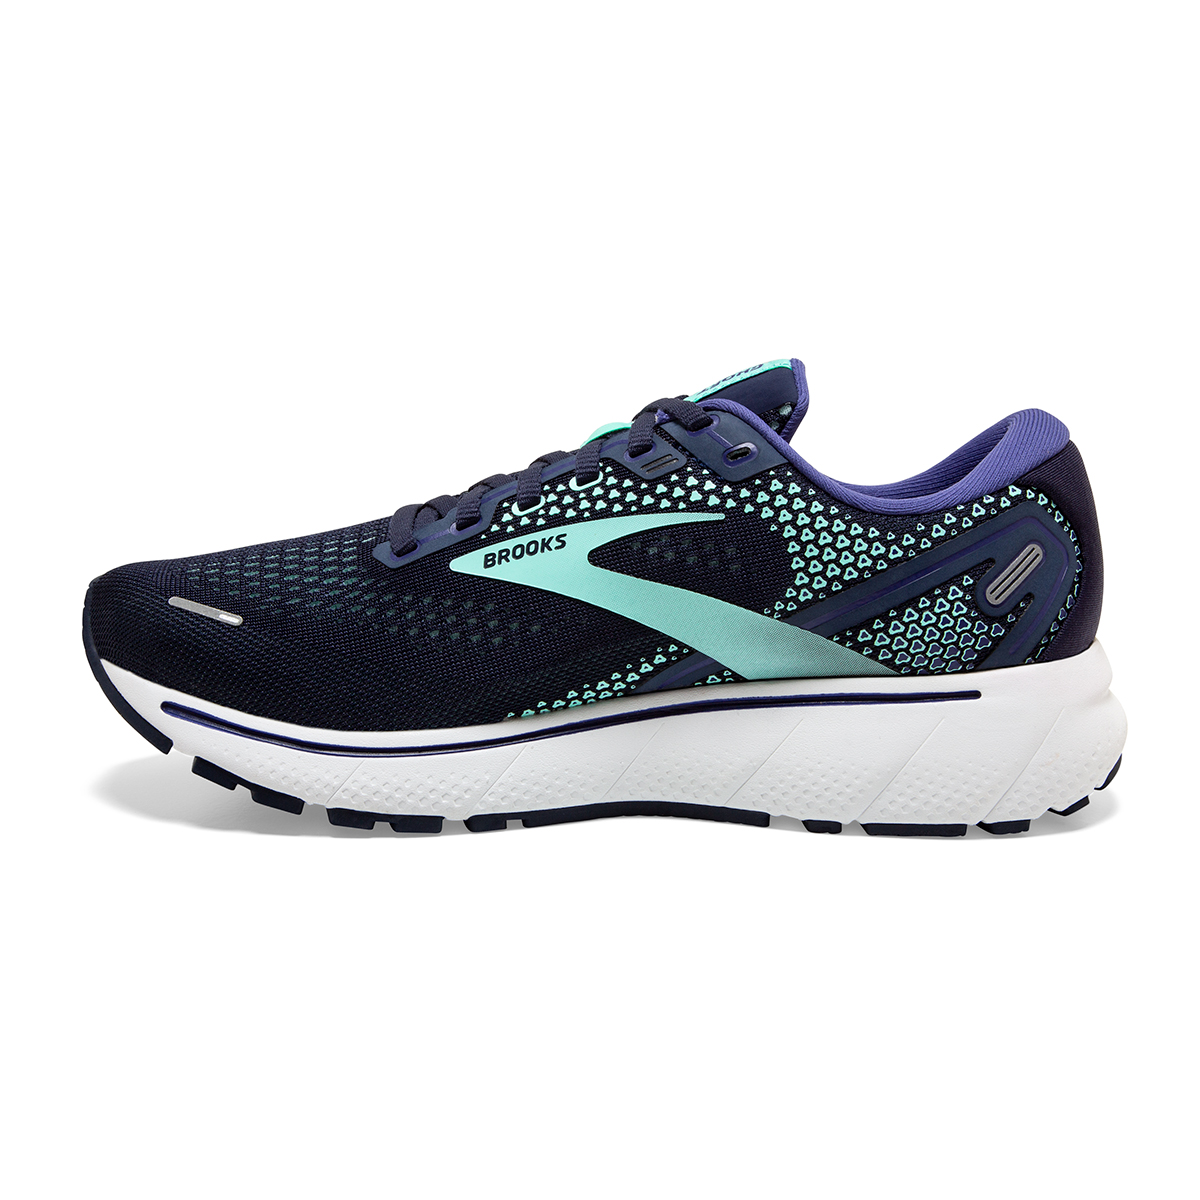 Women's Brooks Ghost 14 Running Shoe - Color: Peacoat/Yucca - Size: 5 - Width: Regular, Peacoat/Yucca, large, image 2